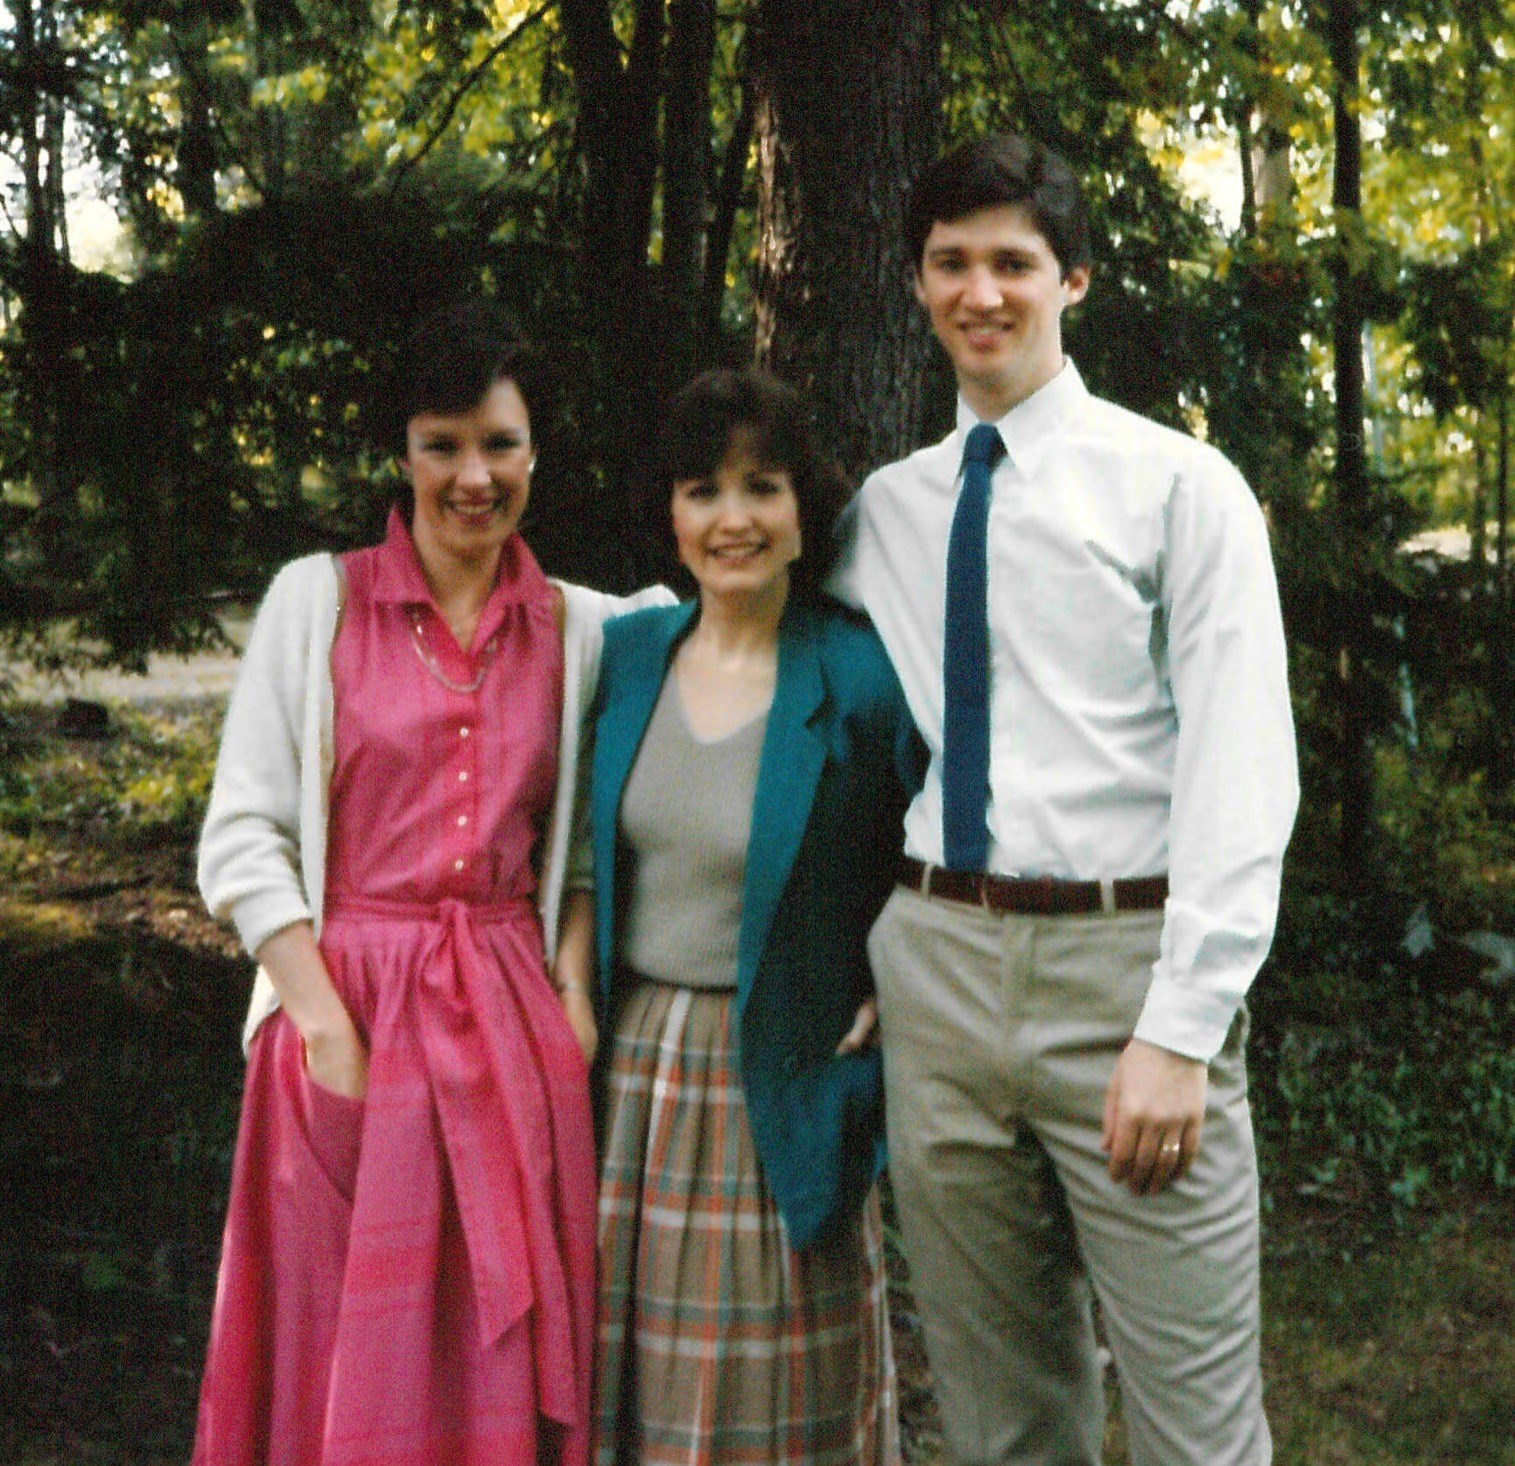 Marjorie with Heather and Steve, mid-1980s